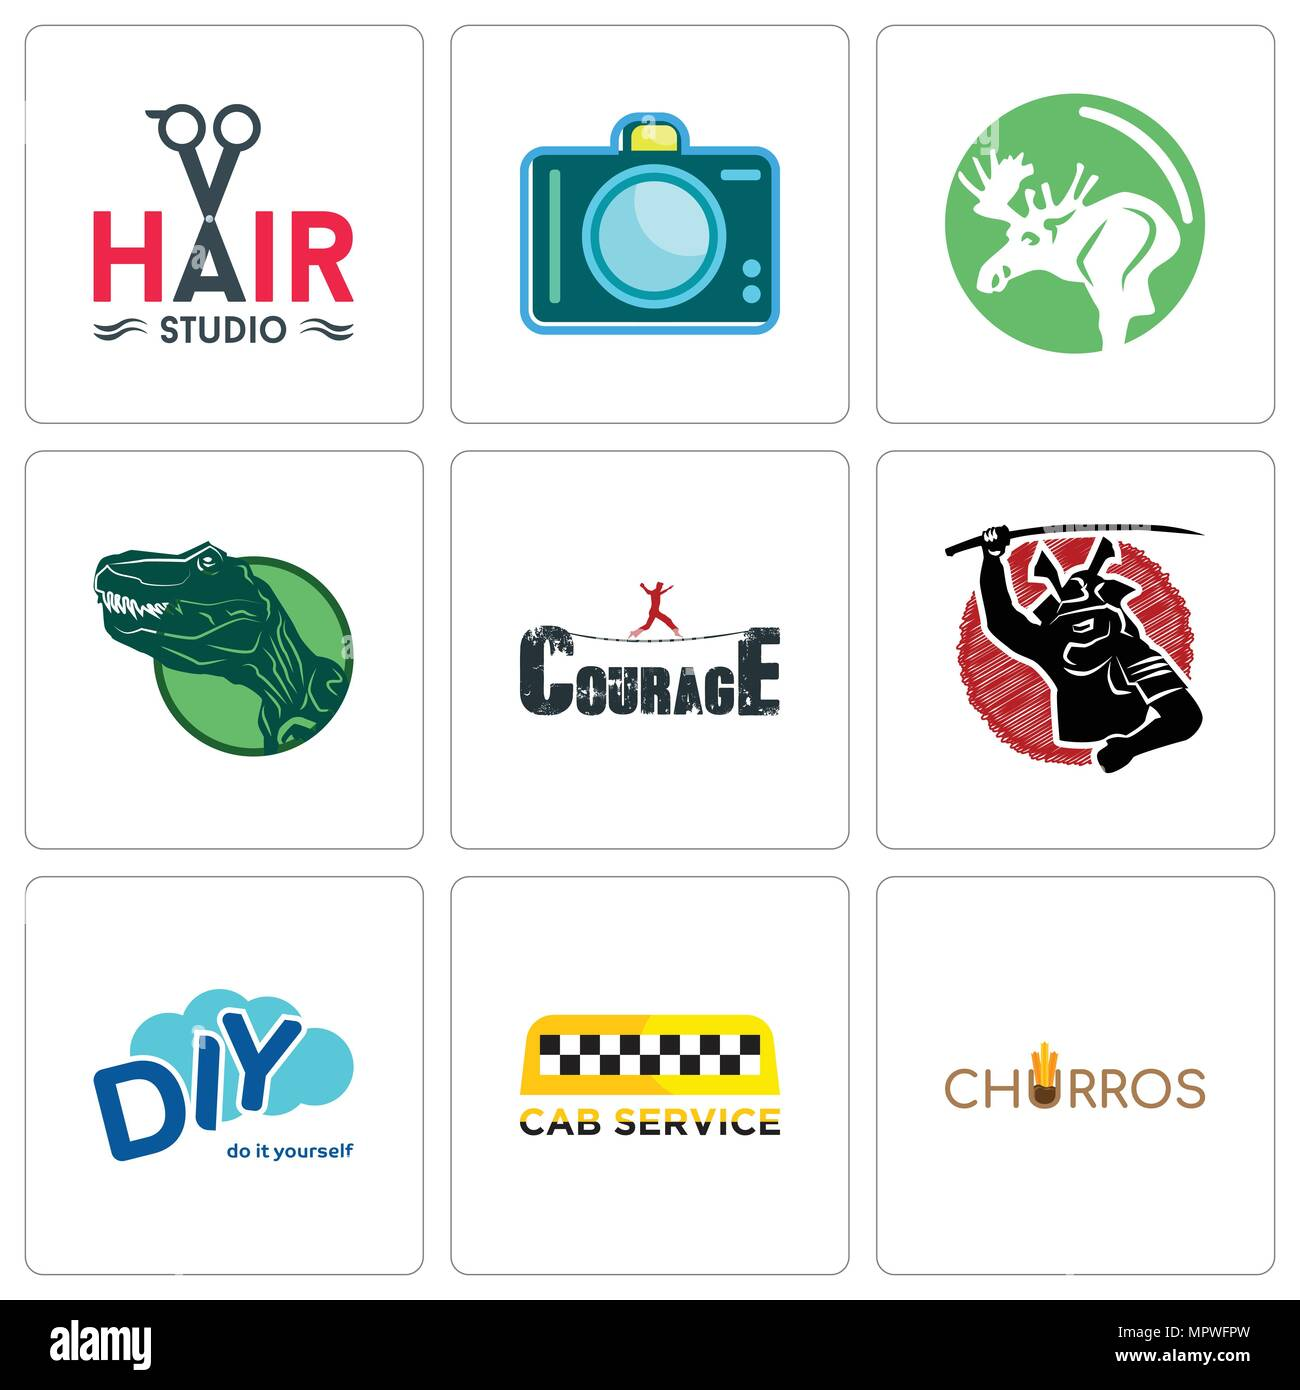 Set of 9 simple editable icons such as churros cab service diy set of 9 simple editable icons such as churros cab service diy courage dino moose dslr hair studio can be used for mobile web solutioingenieria Image collections